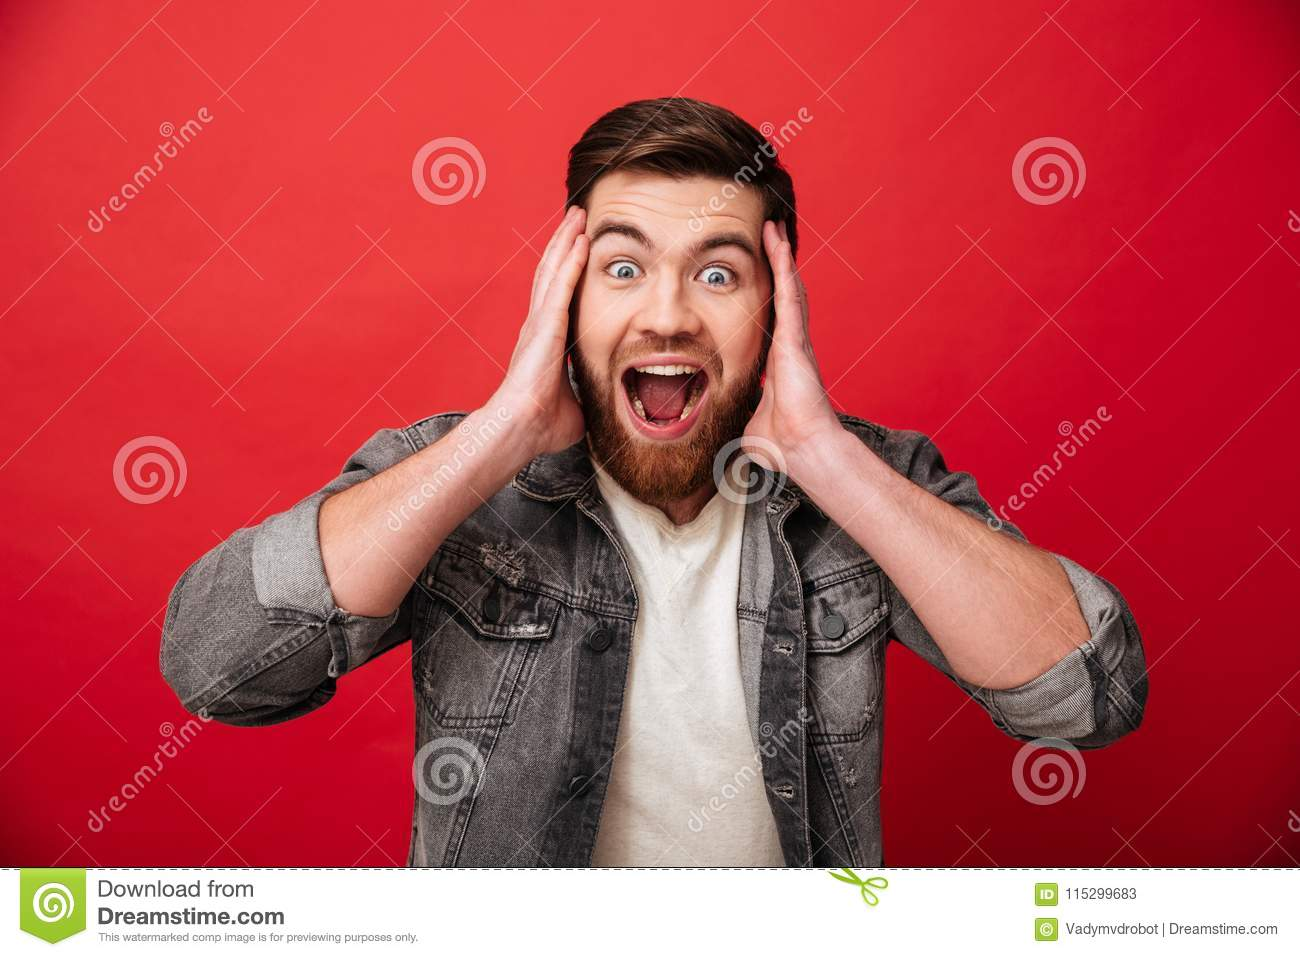 Photo of emotional guy 30s wearing beard in jeans jacket screaming and grabbing head in delight, isolated over red background